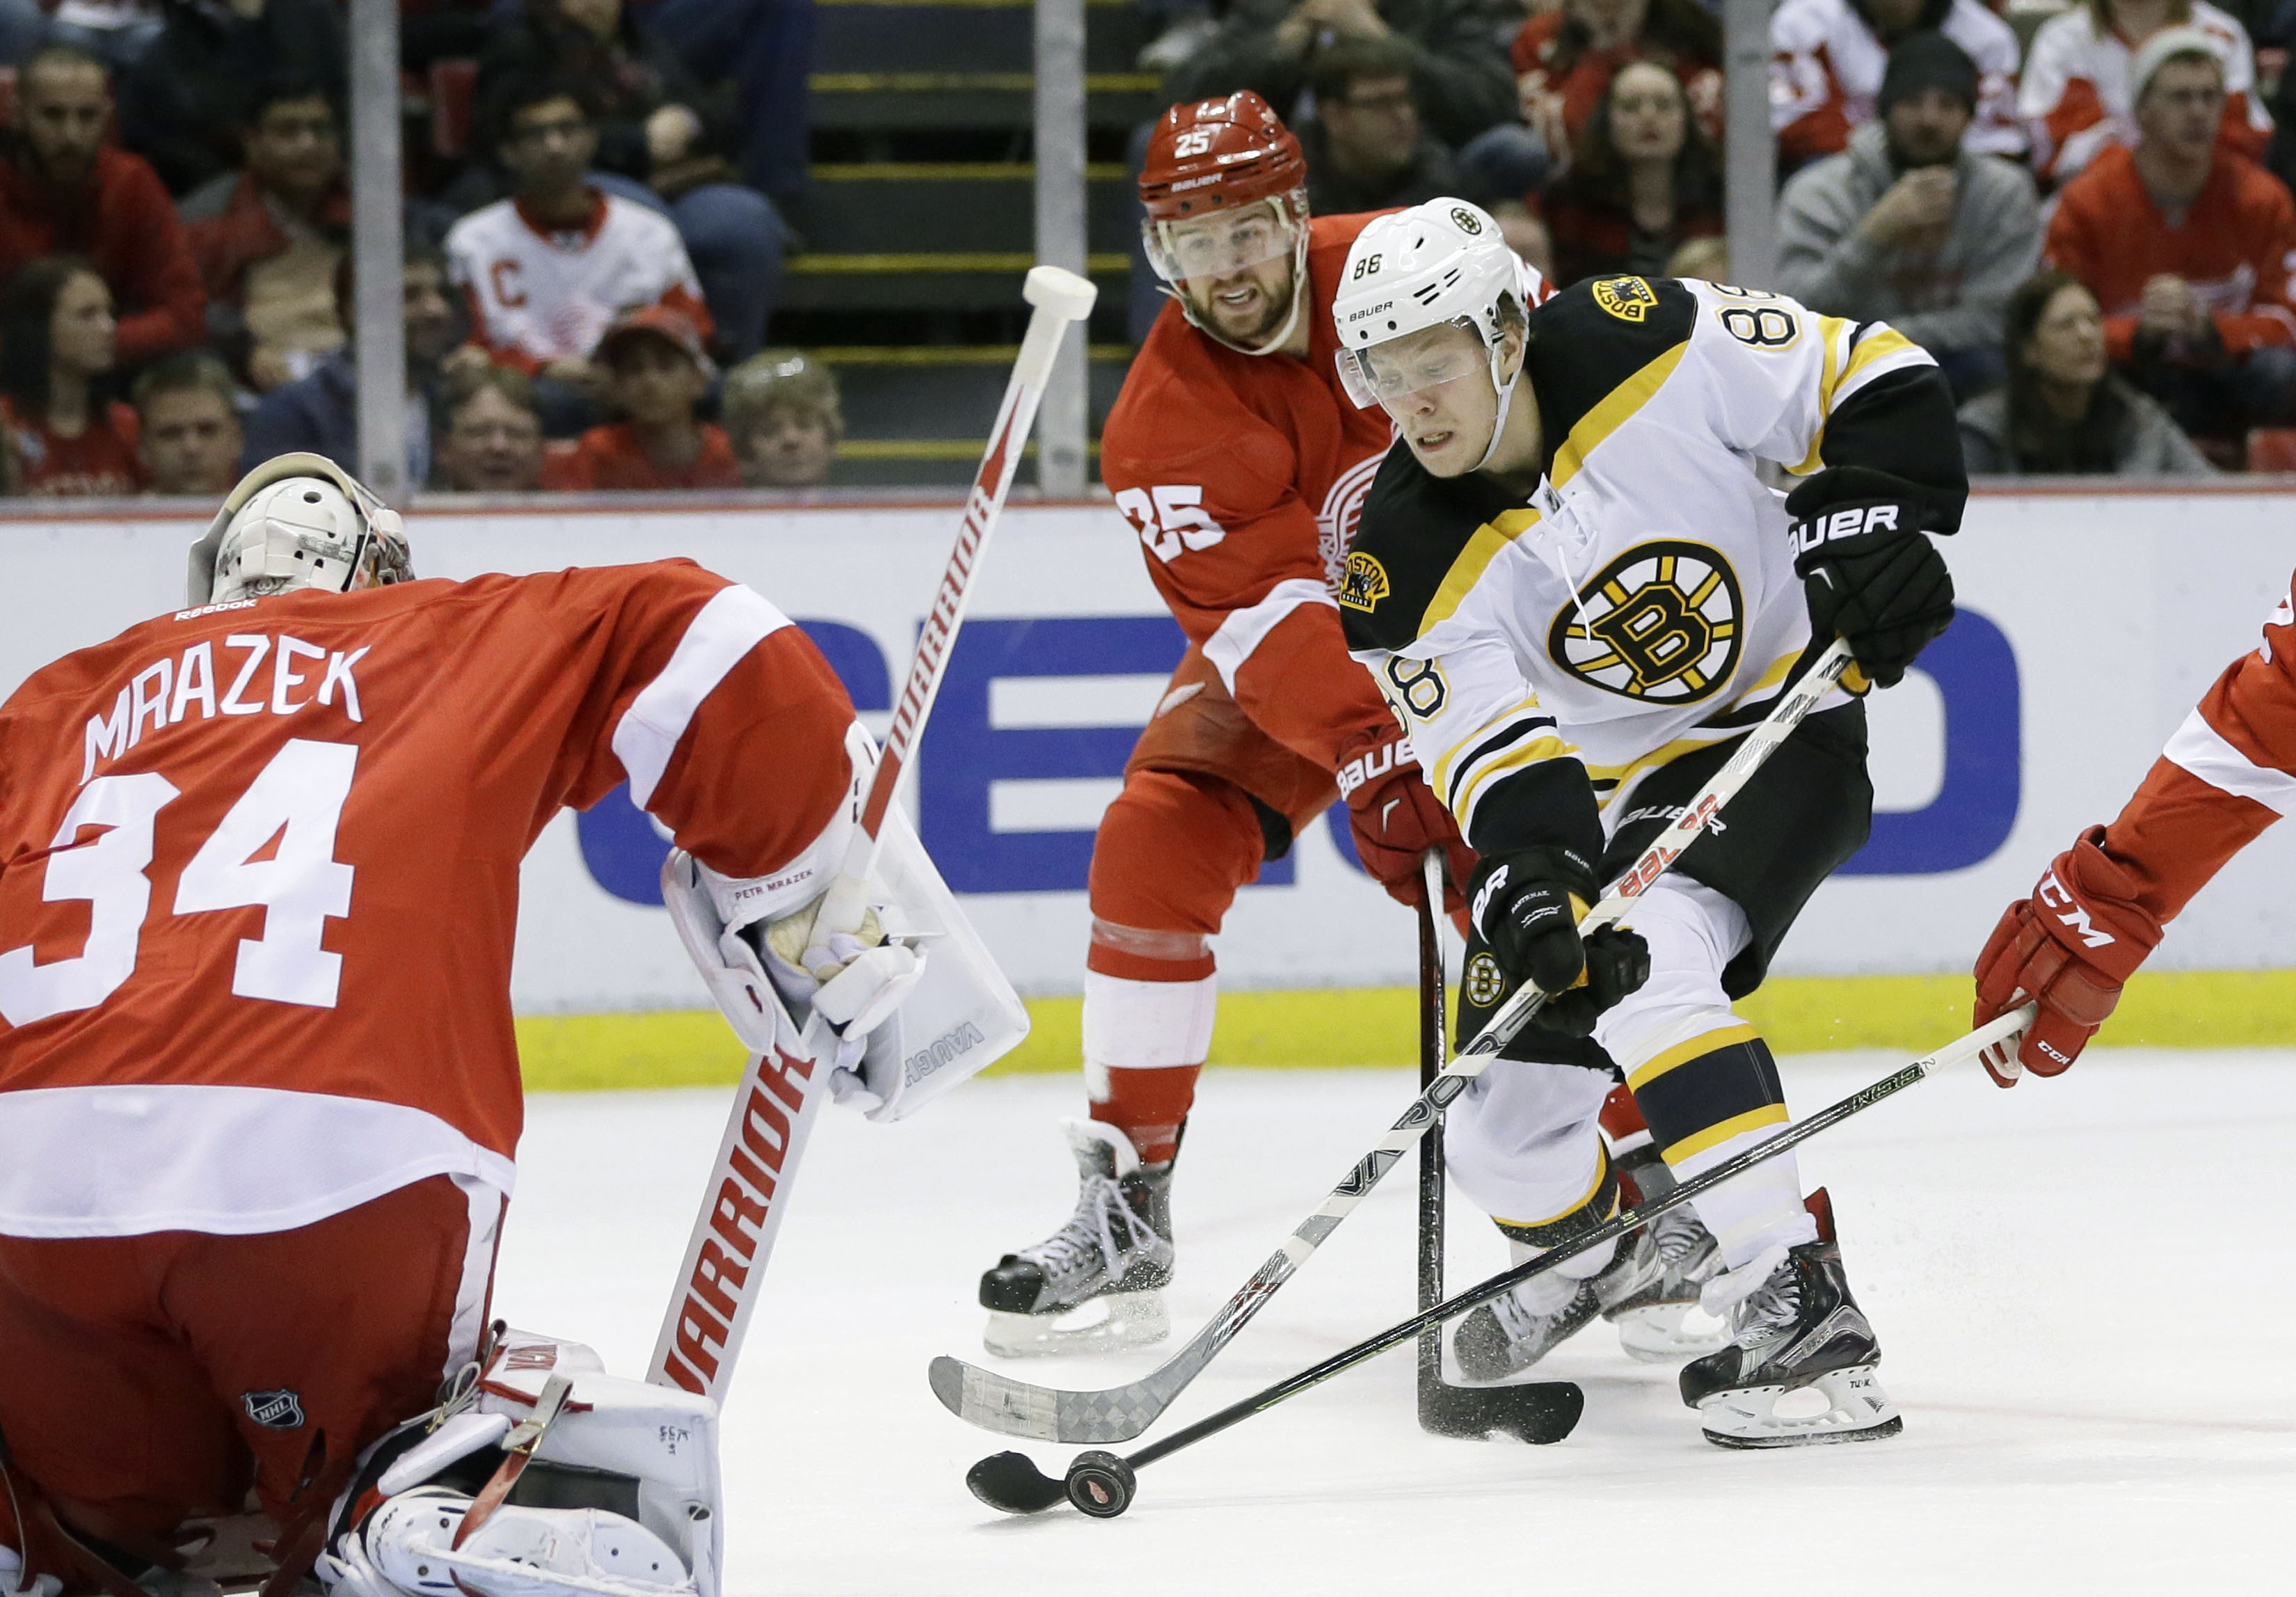 bruins_red_wings_hockey-8204aededca44efd_r5383.jpeg